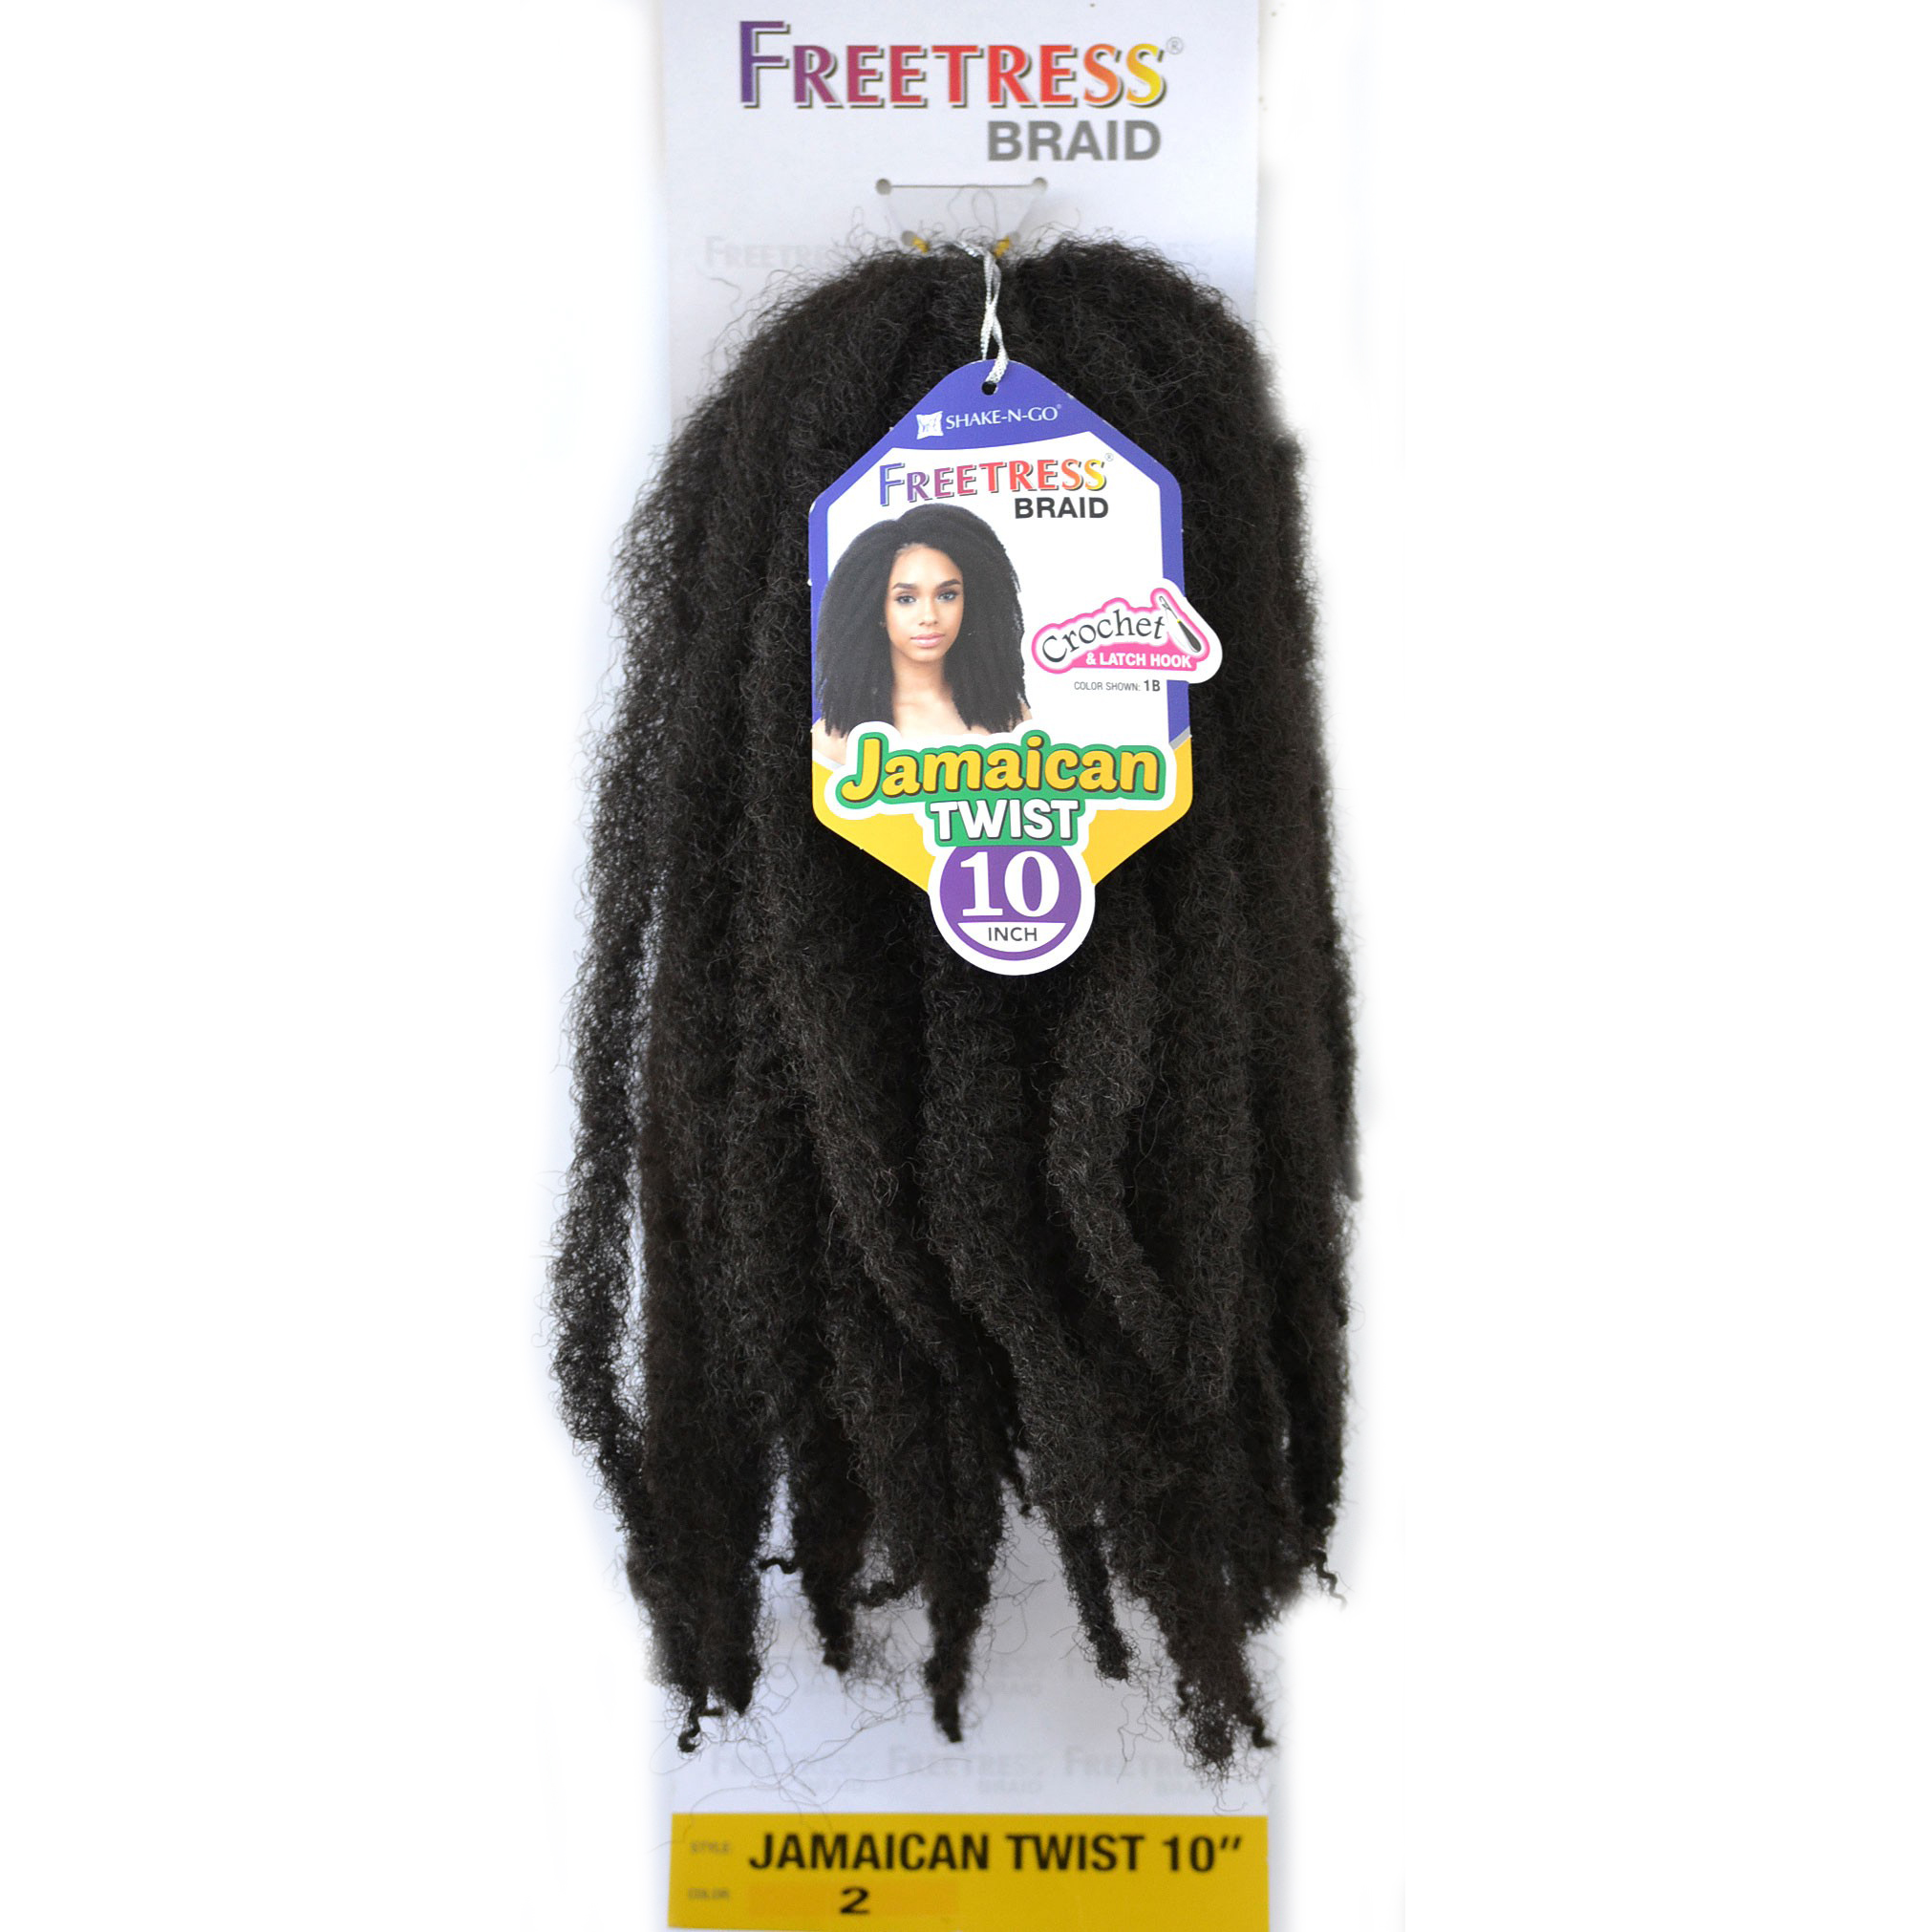 Crochet Braids Jamaican Twist Hair : ... > Hair Care & Styling > Hair Extensions & Wigs > Hair Ex...